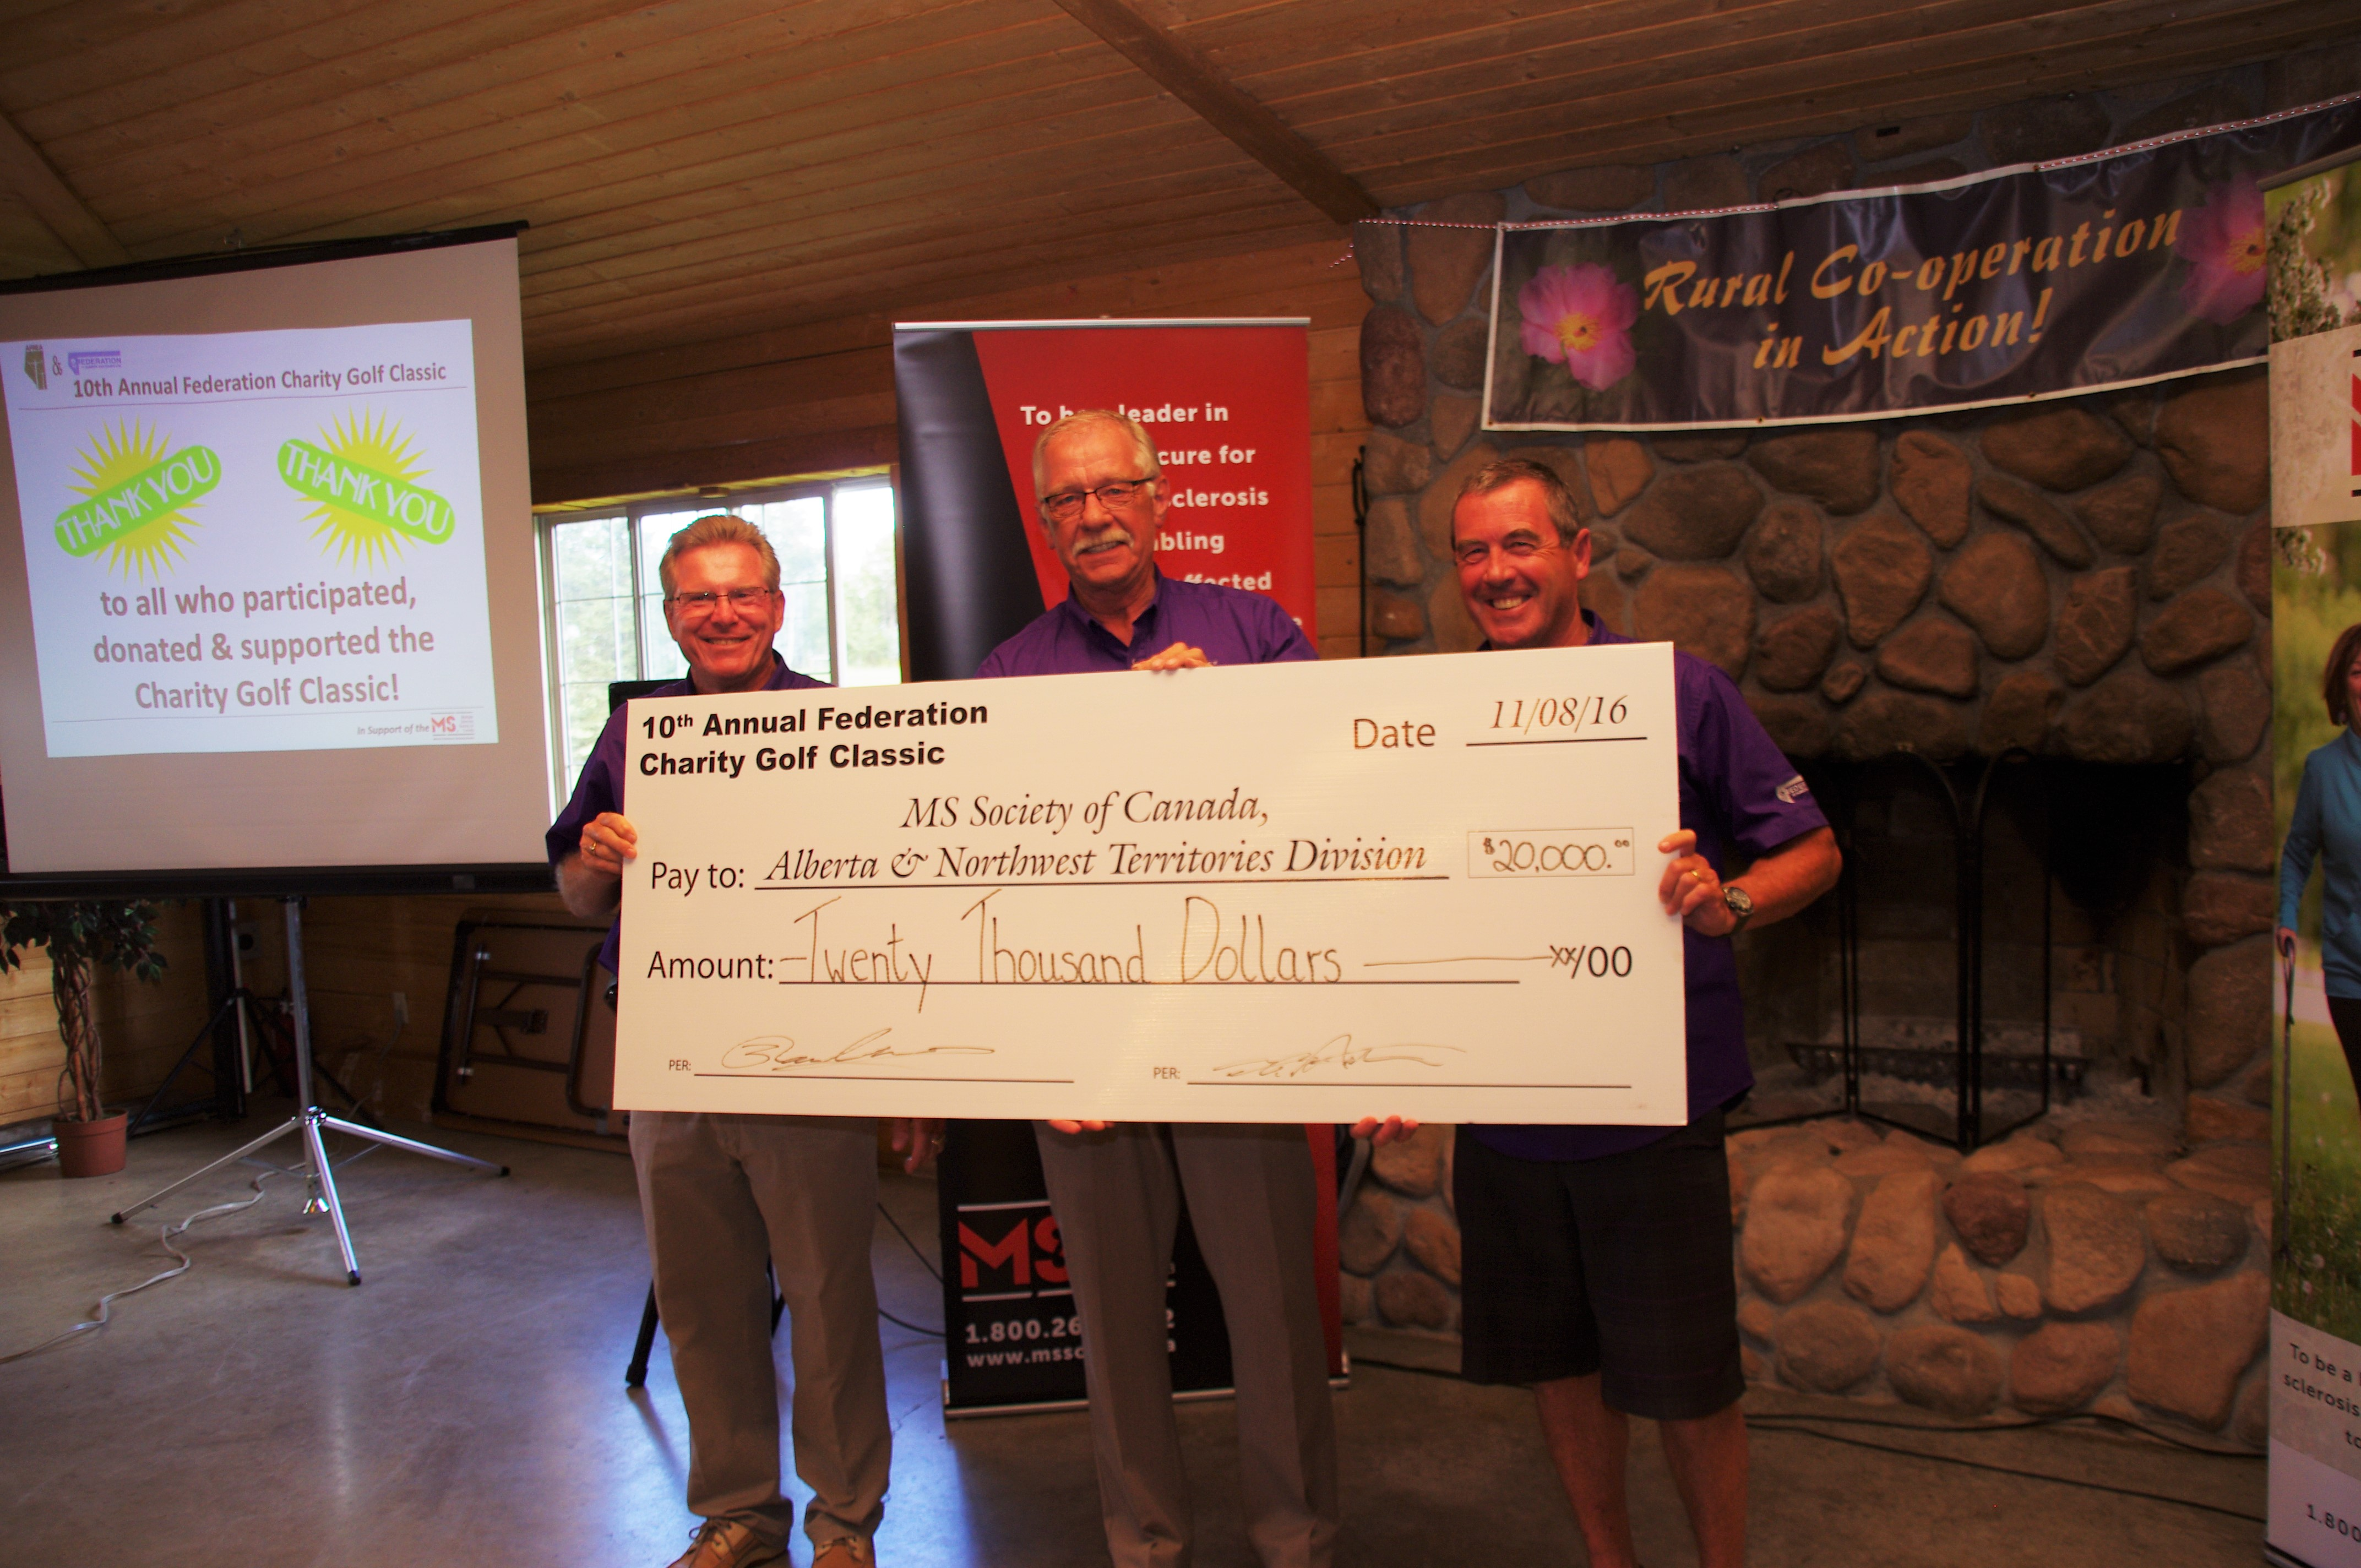 Cheque presentation at 10th AnnualFederation Charity Golf Classic